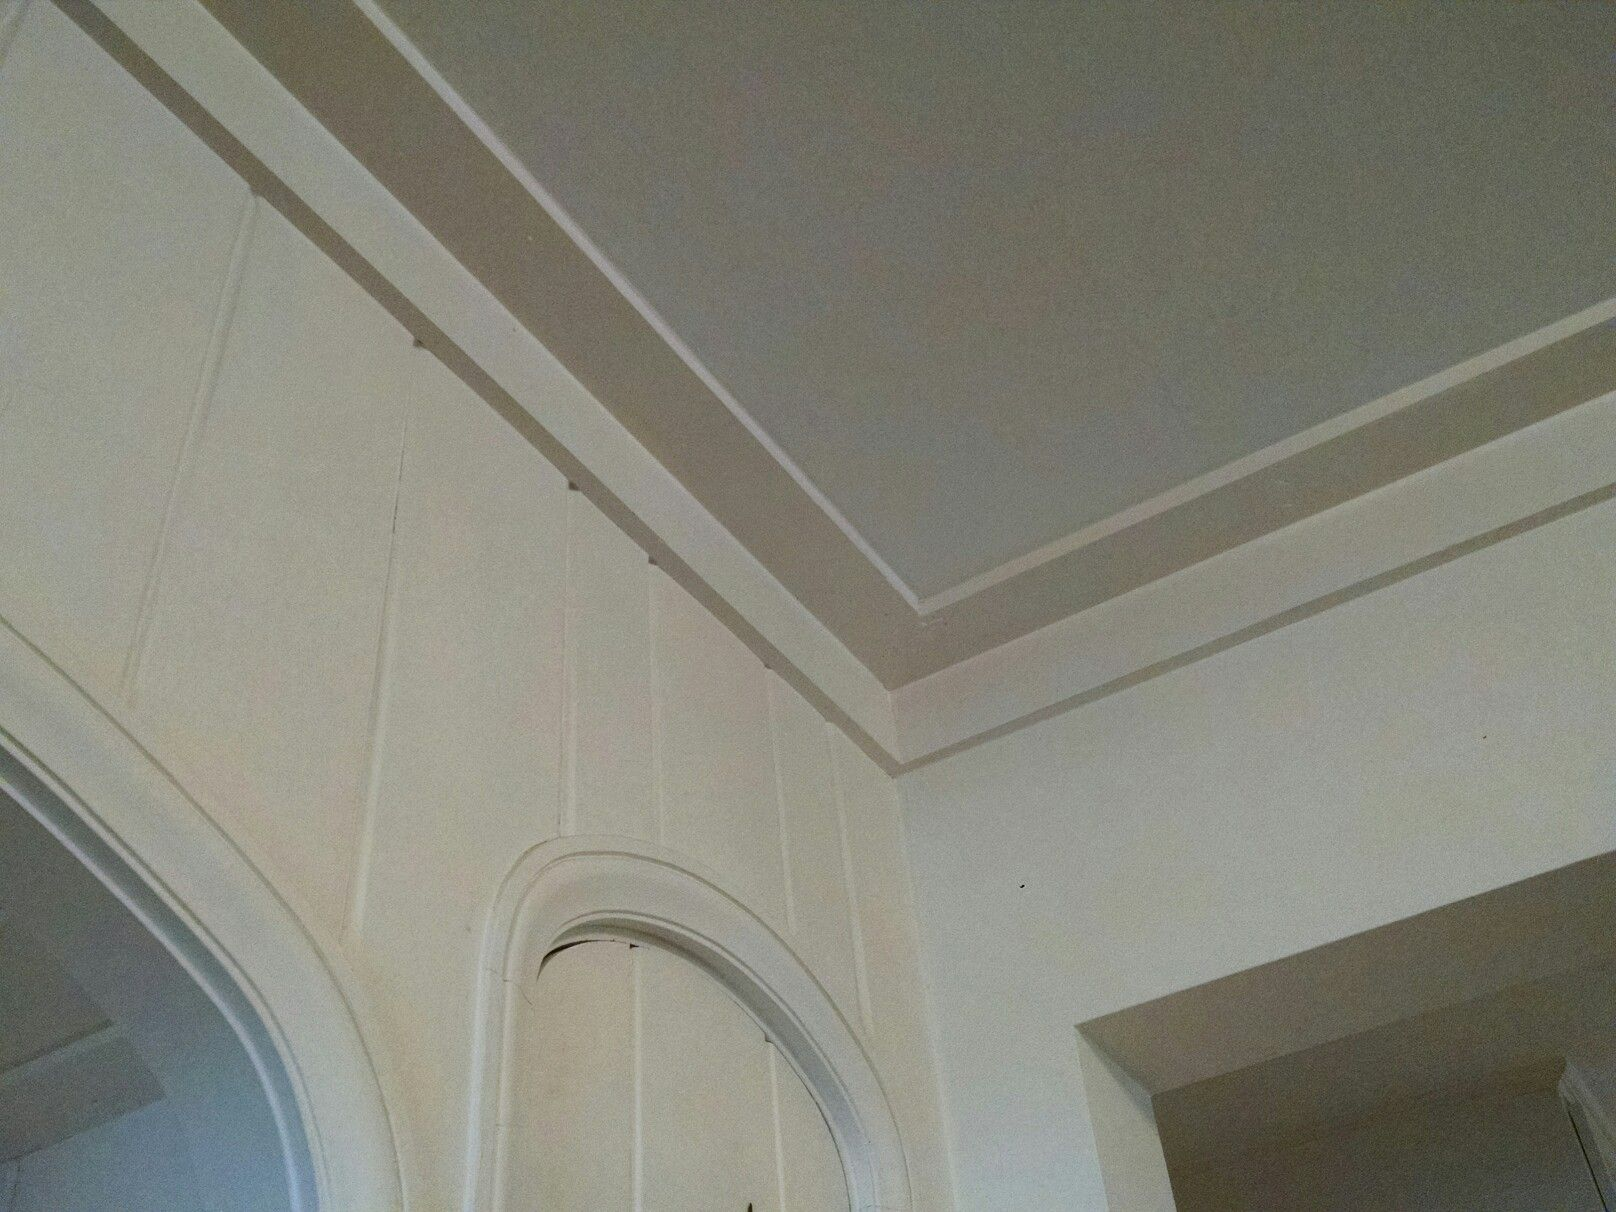 Art deco molding art deco style trim and crown molding moldings art deco molding art deco style trim and crown molding moldings pinterest decoracin de interiores interiores y decoracin malvernweather Choice Image